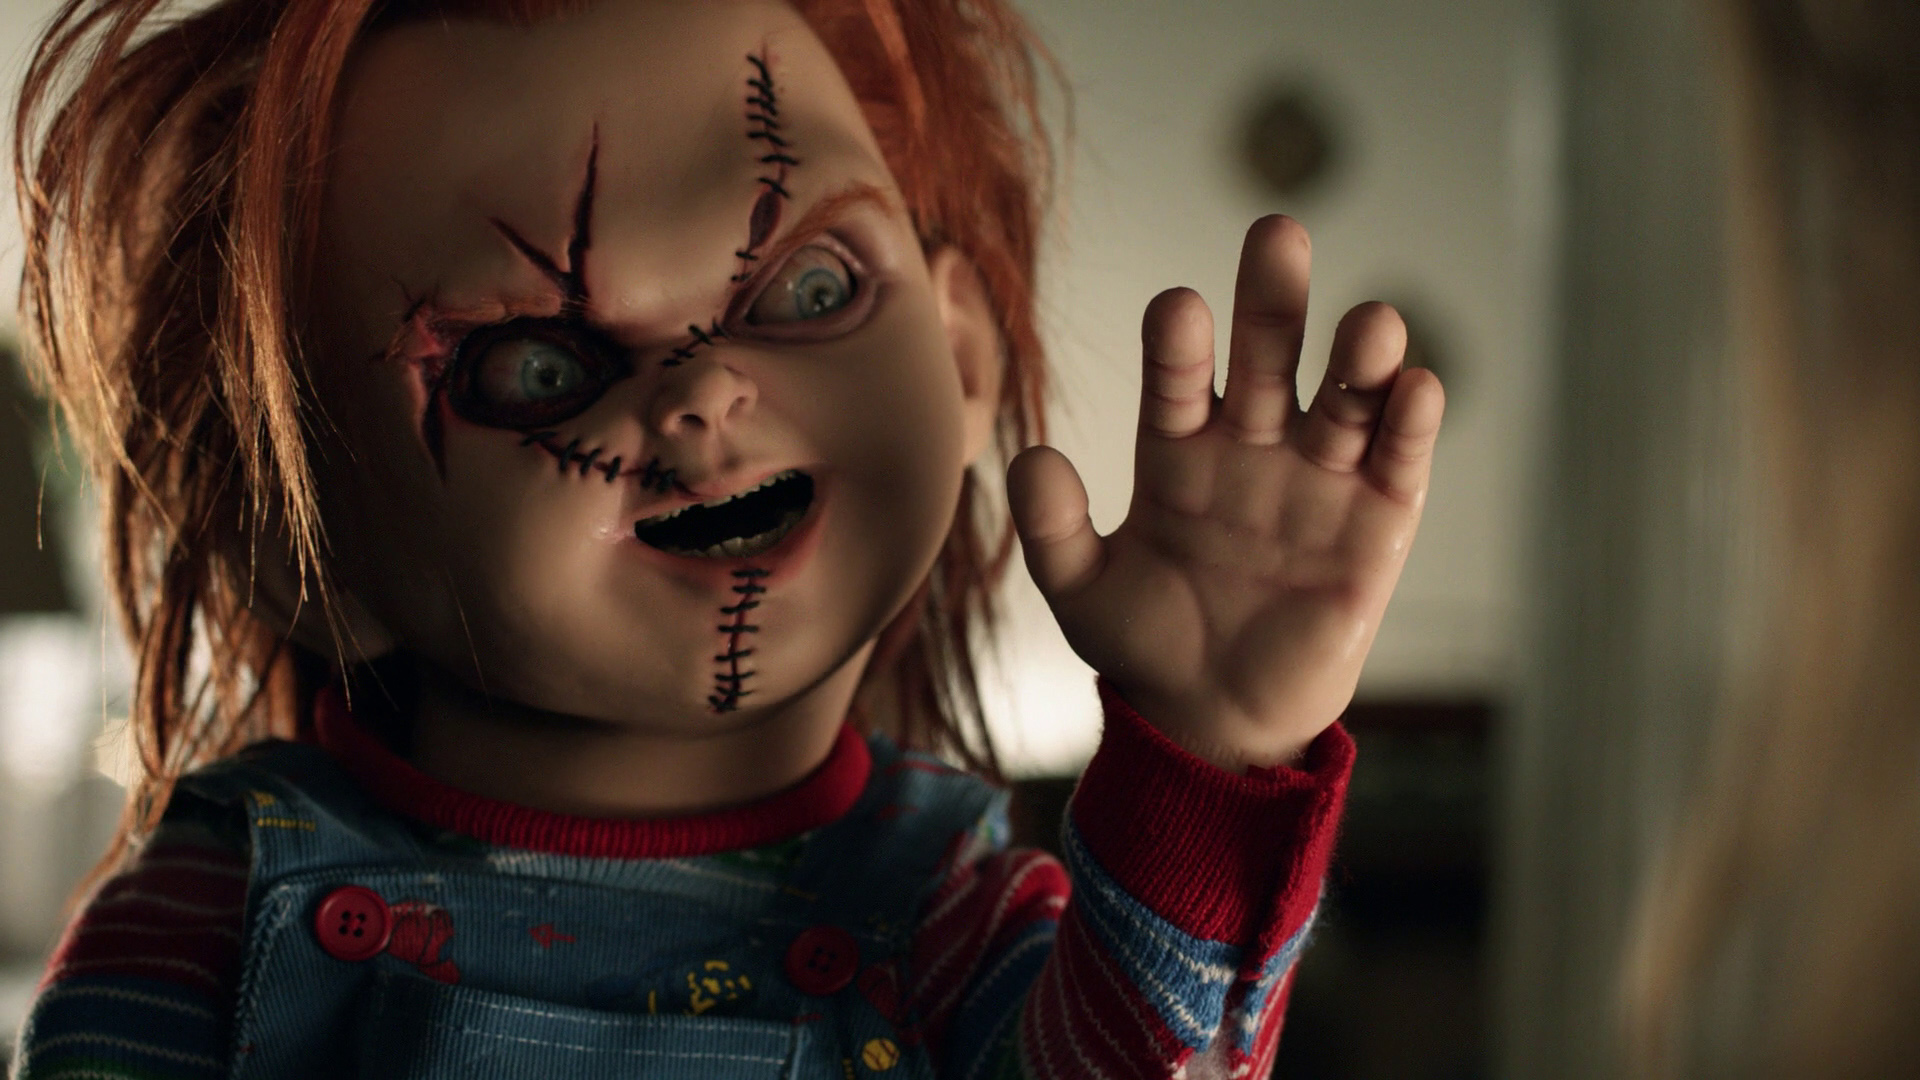 Watch Bride of Chucky Online Free